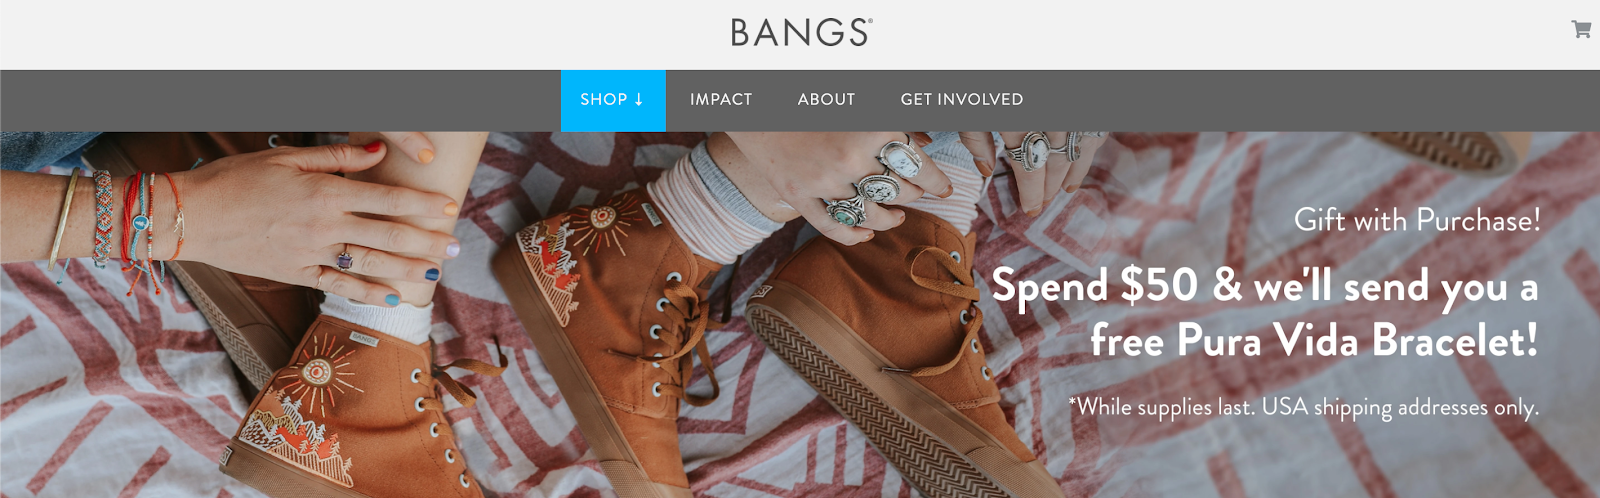 Bangs shoes puravida